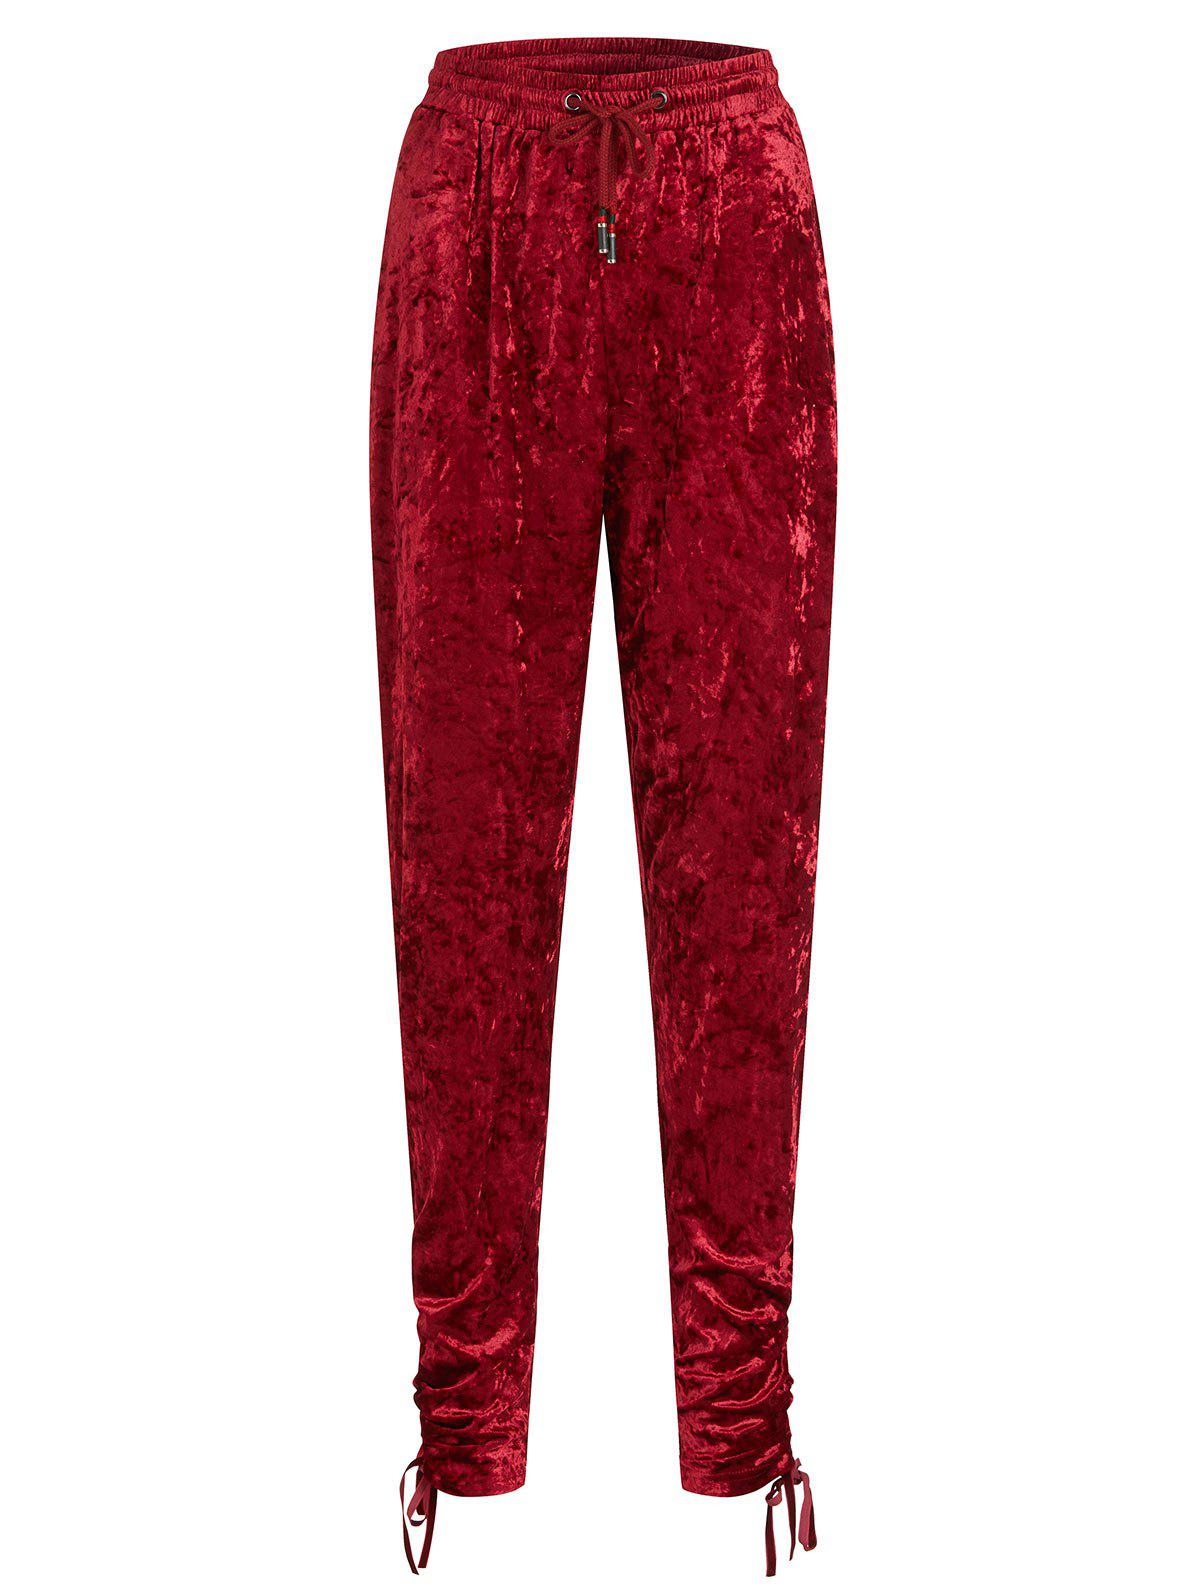 Shops Gathered Cuffs Velvet Plus Size Joggers Pants